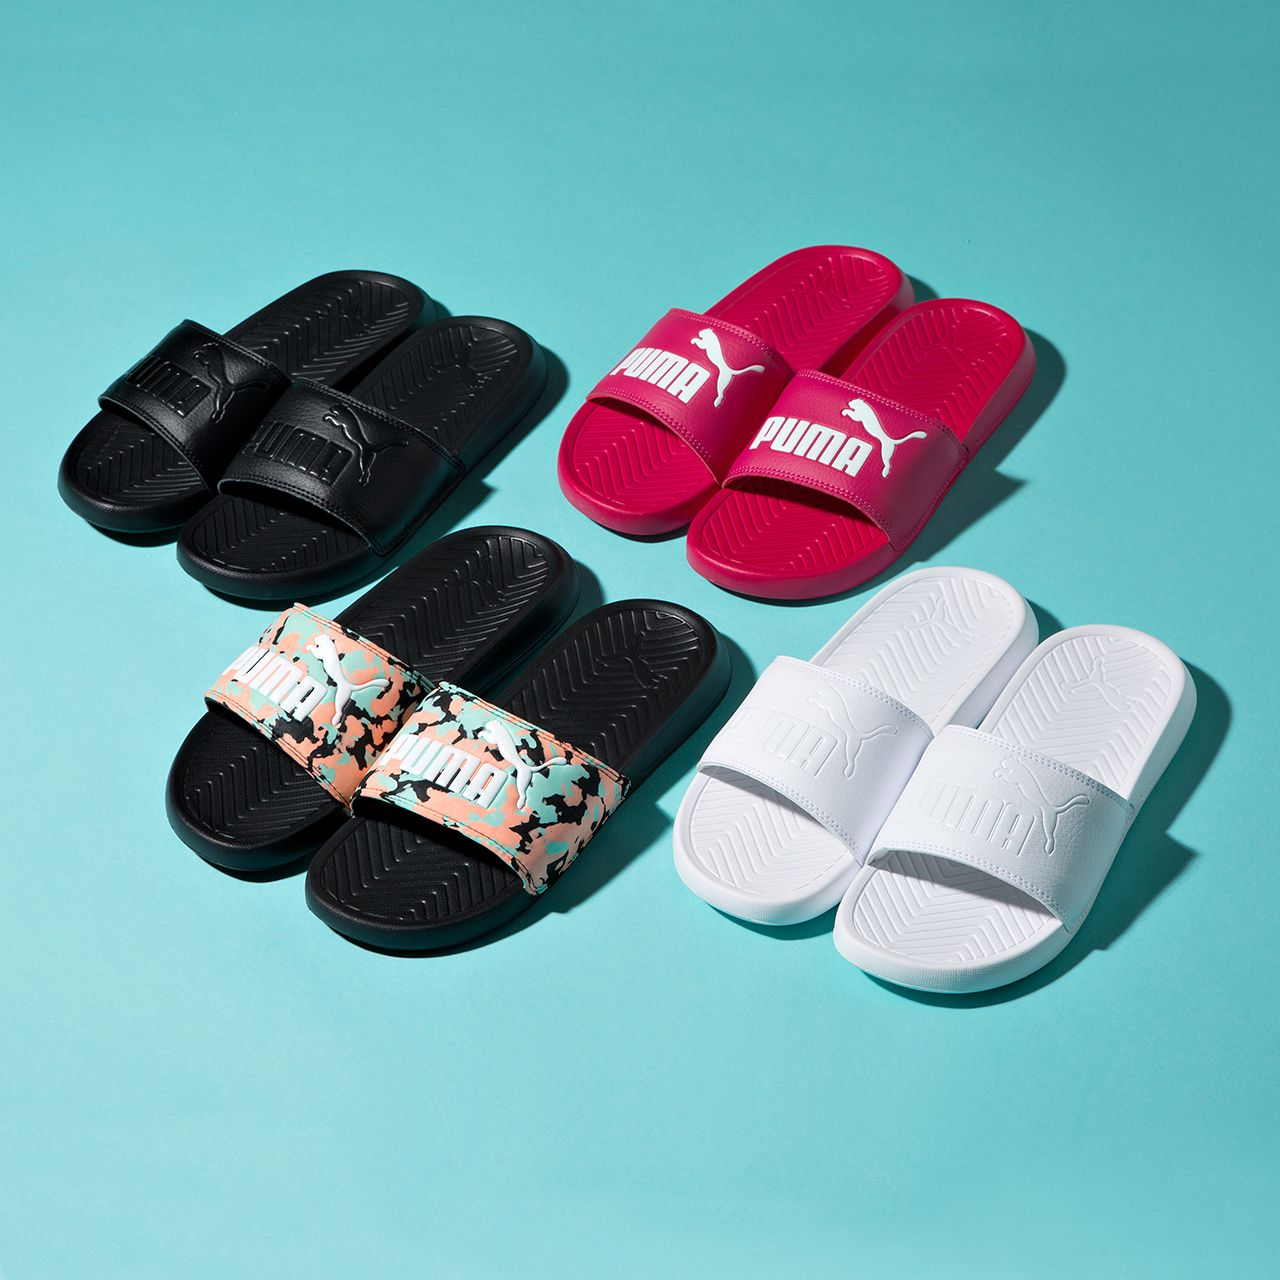 837794fb347d Prepare for the holiday season with the Puma Womens Popcat Slide Sandal.